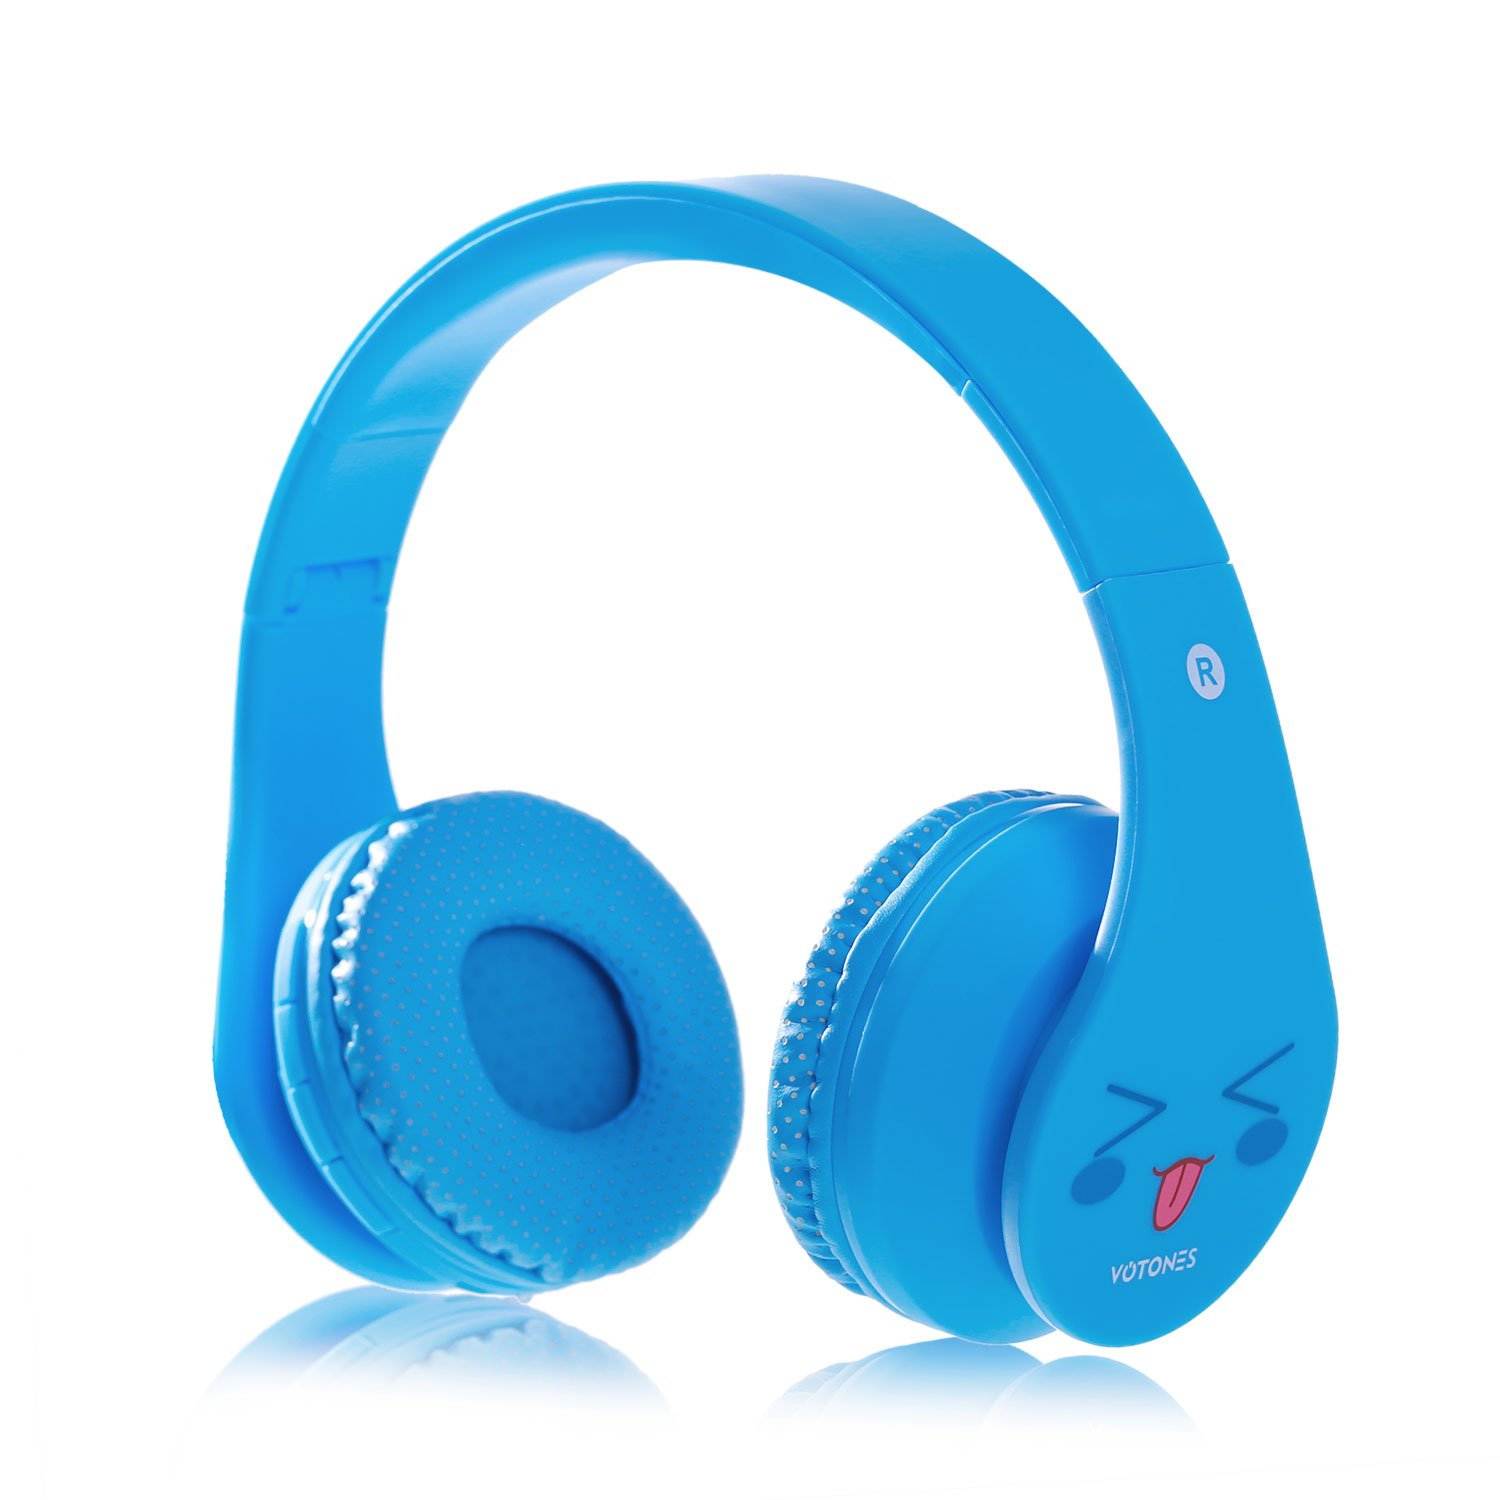 Kids Wireless Headphones,Over Ear Bluetooth Headphones 85dB Volume Limiting,Foldable Headset with Microphone 3.5mm Jack SD Card for Boys Girls Adults,Bluetooth Devices for Smartphone PC Tablet(Blue)